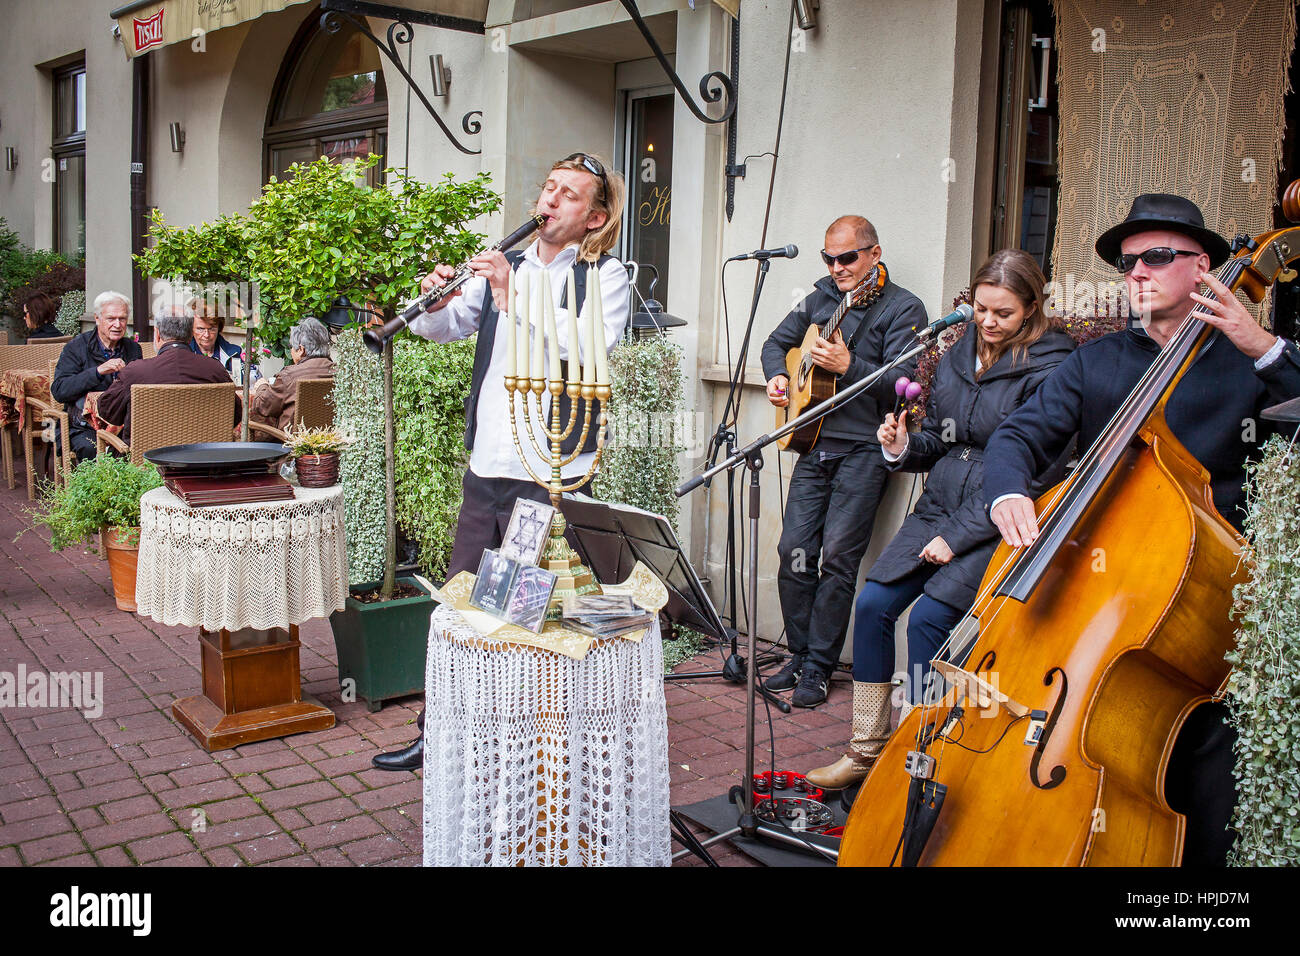 Musics, at Ester Restaurant, Szeroka 20, Kazimierz district, Krakow, Poland. - Stock Image